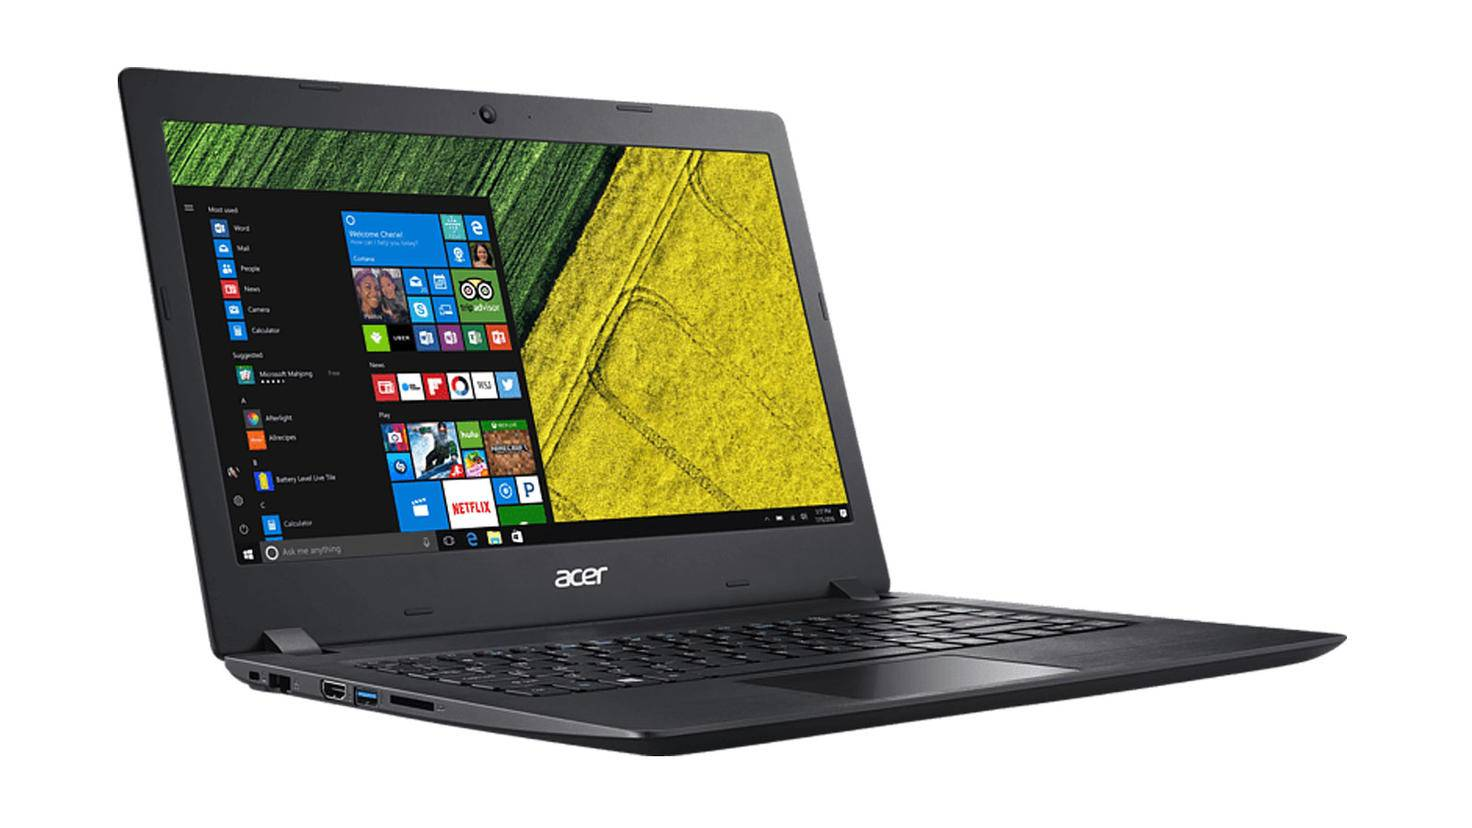 Notebook Laptop Acer Aspire 1